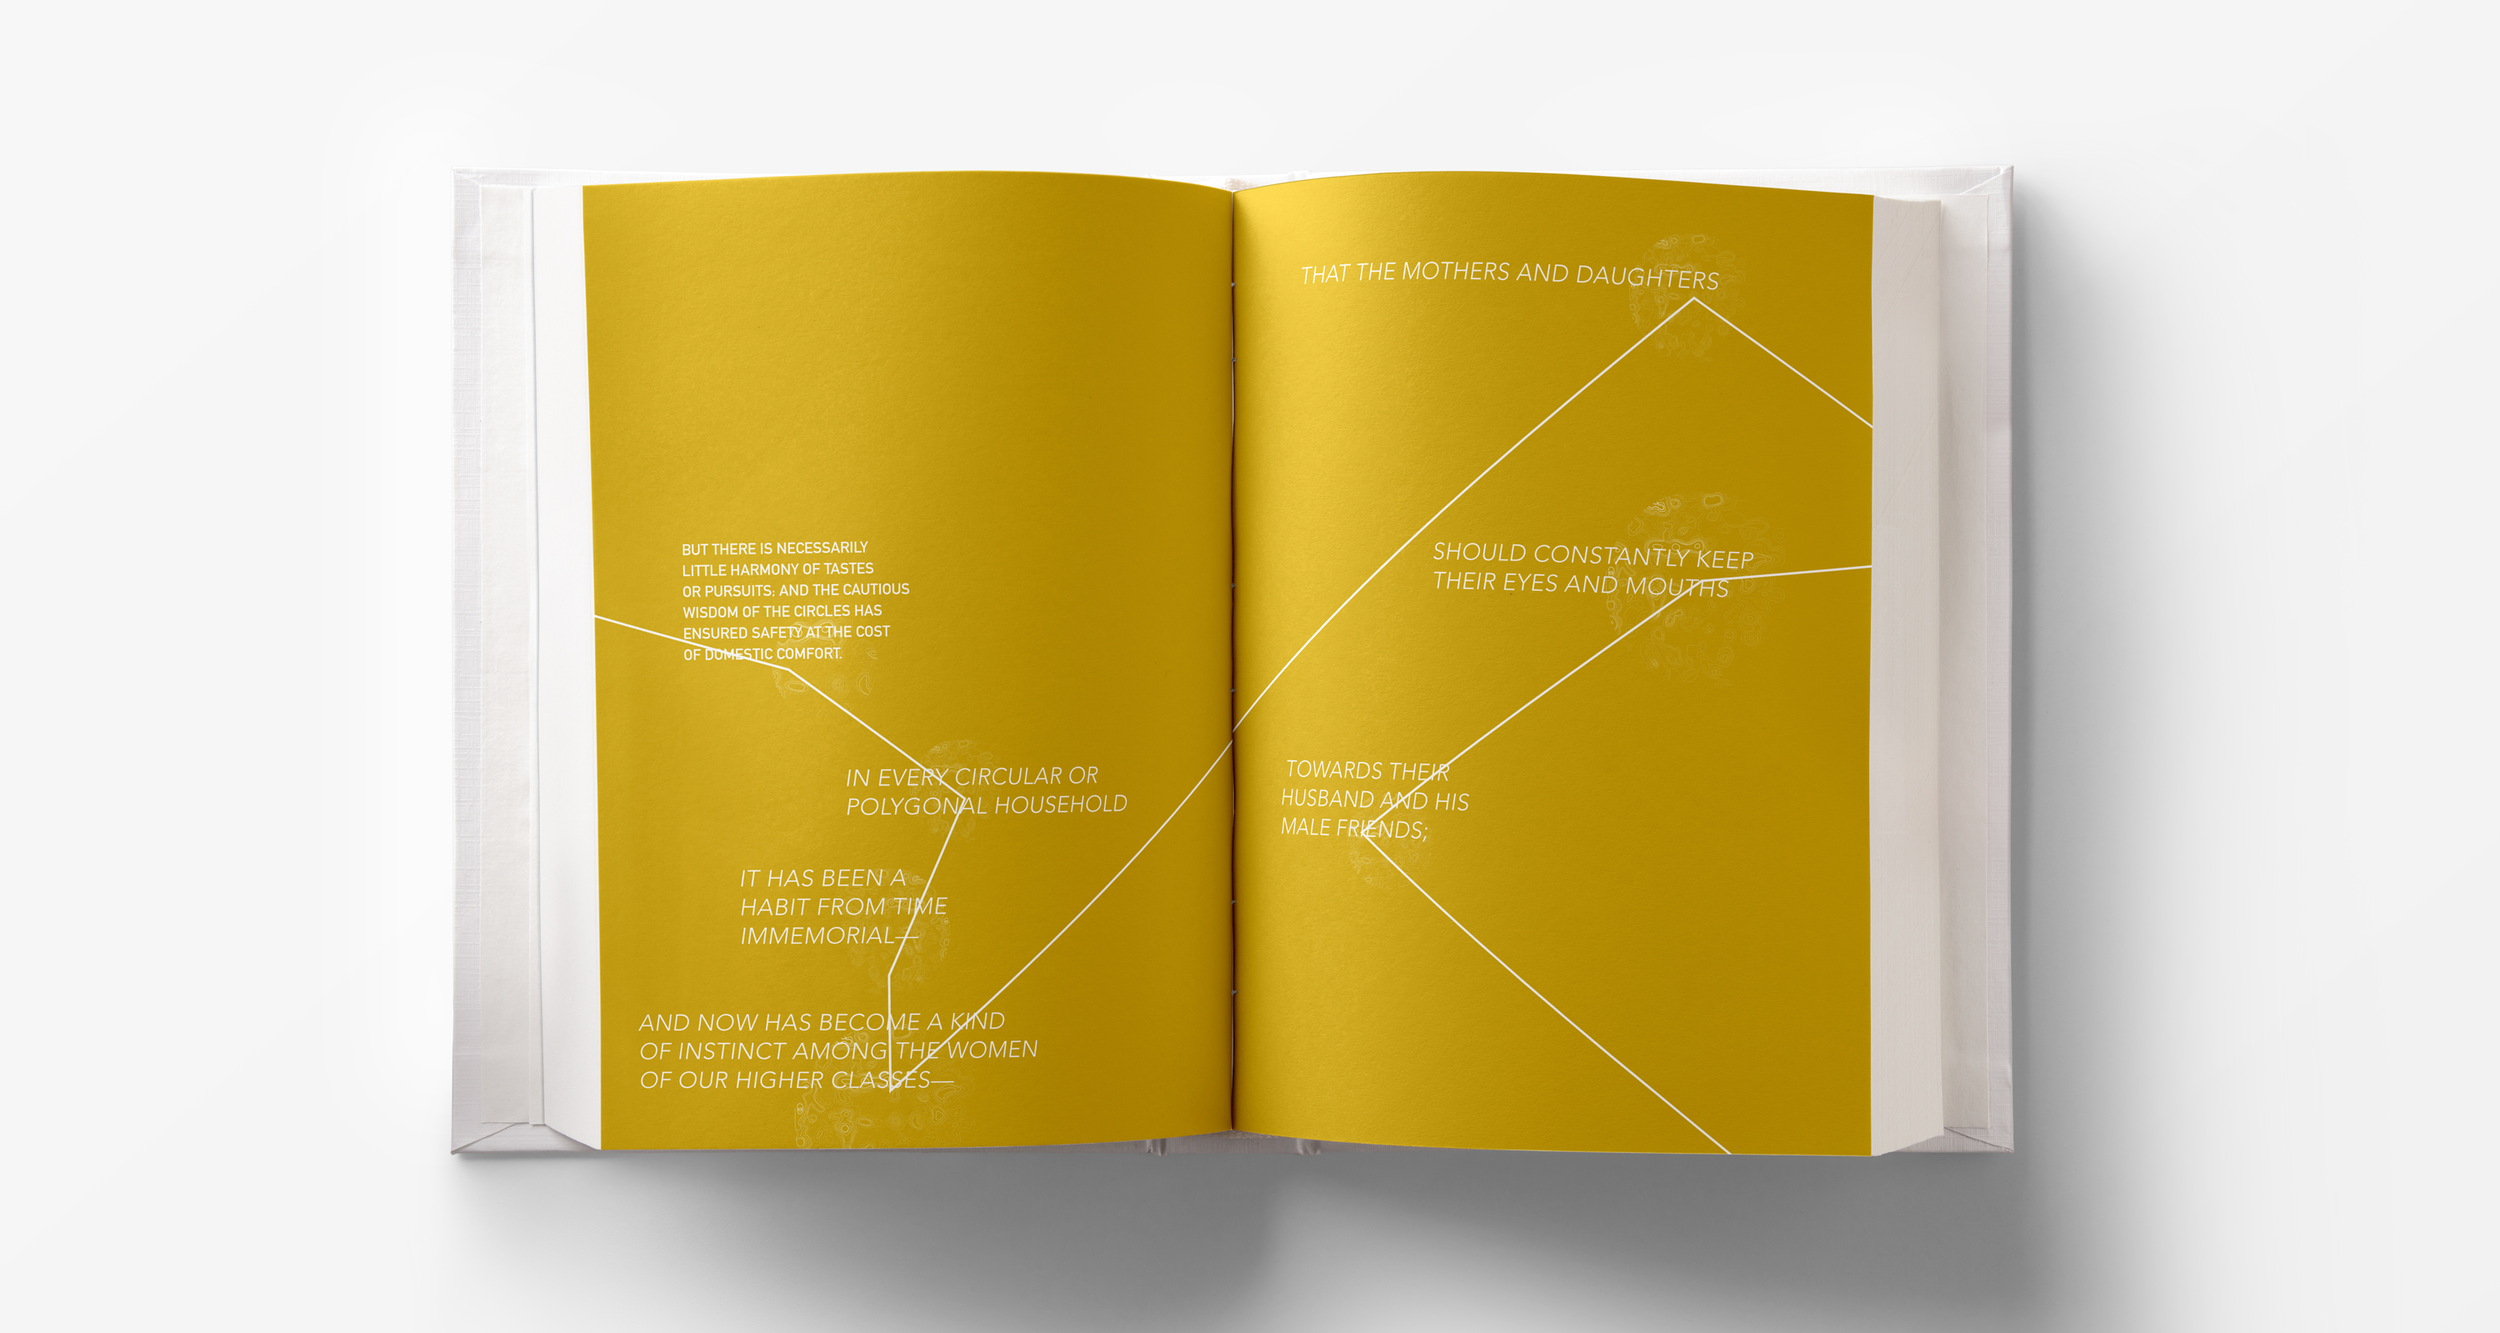 FLATLAND_Book-Inner-Pages-Mockup3.png